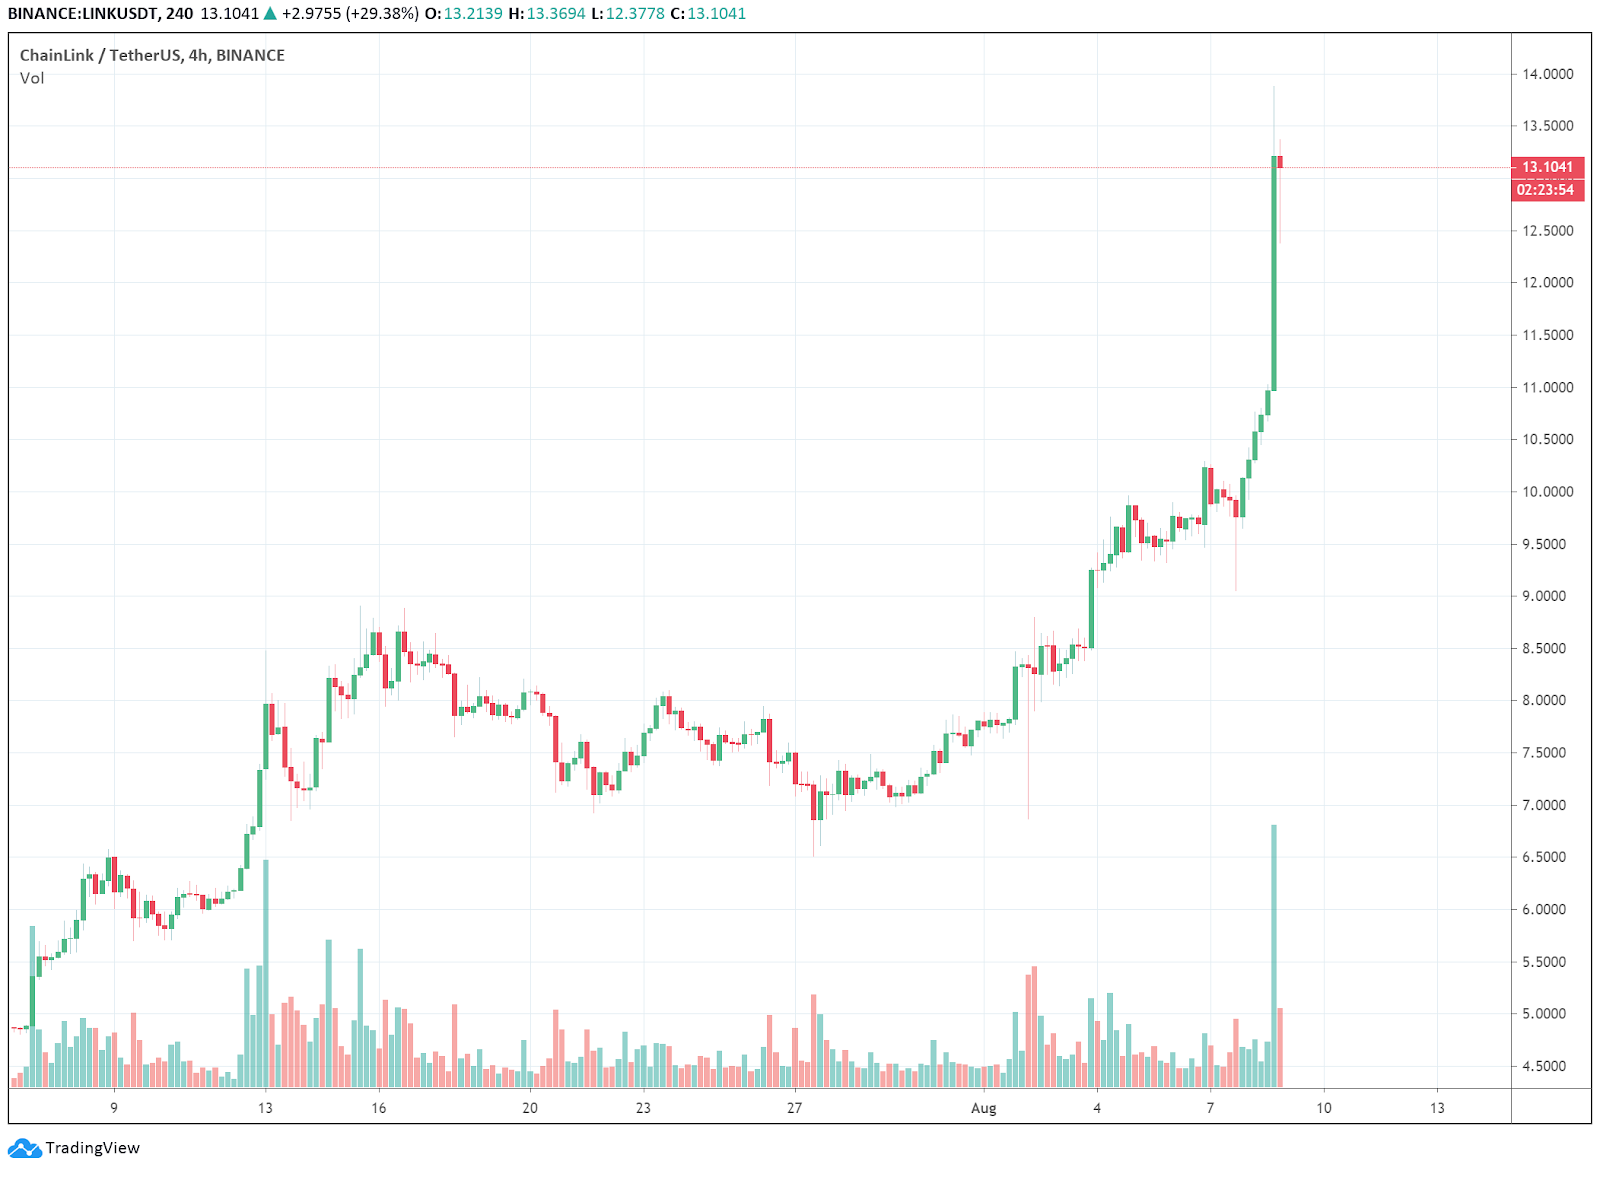 LINK-USDT daily chart